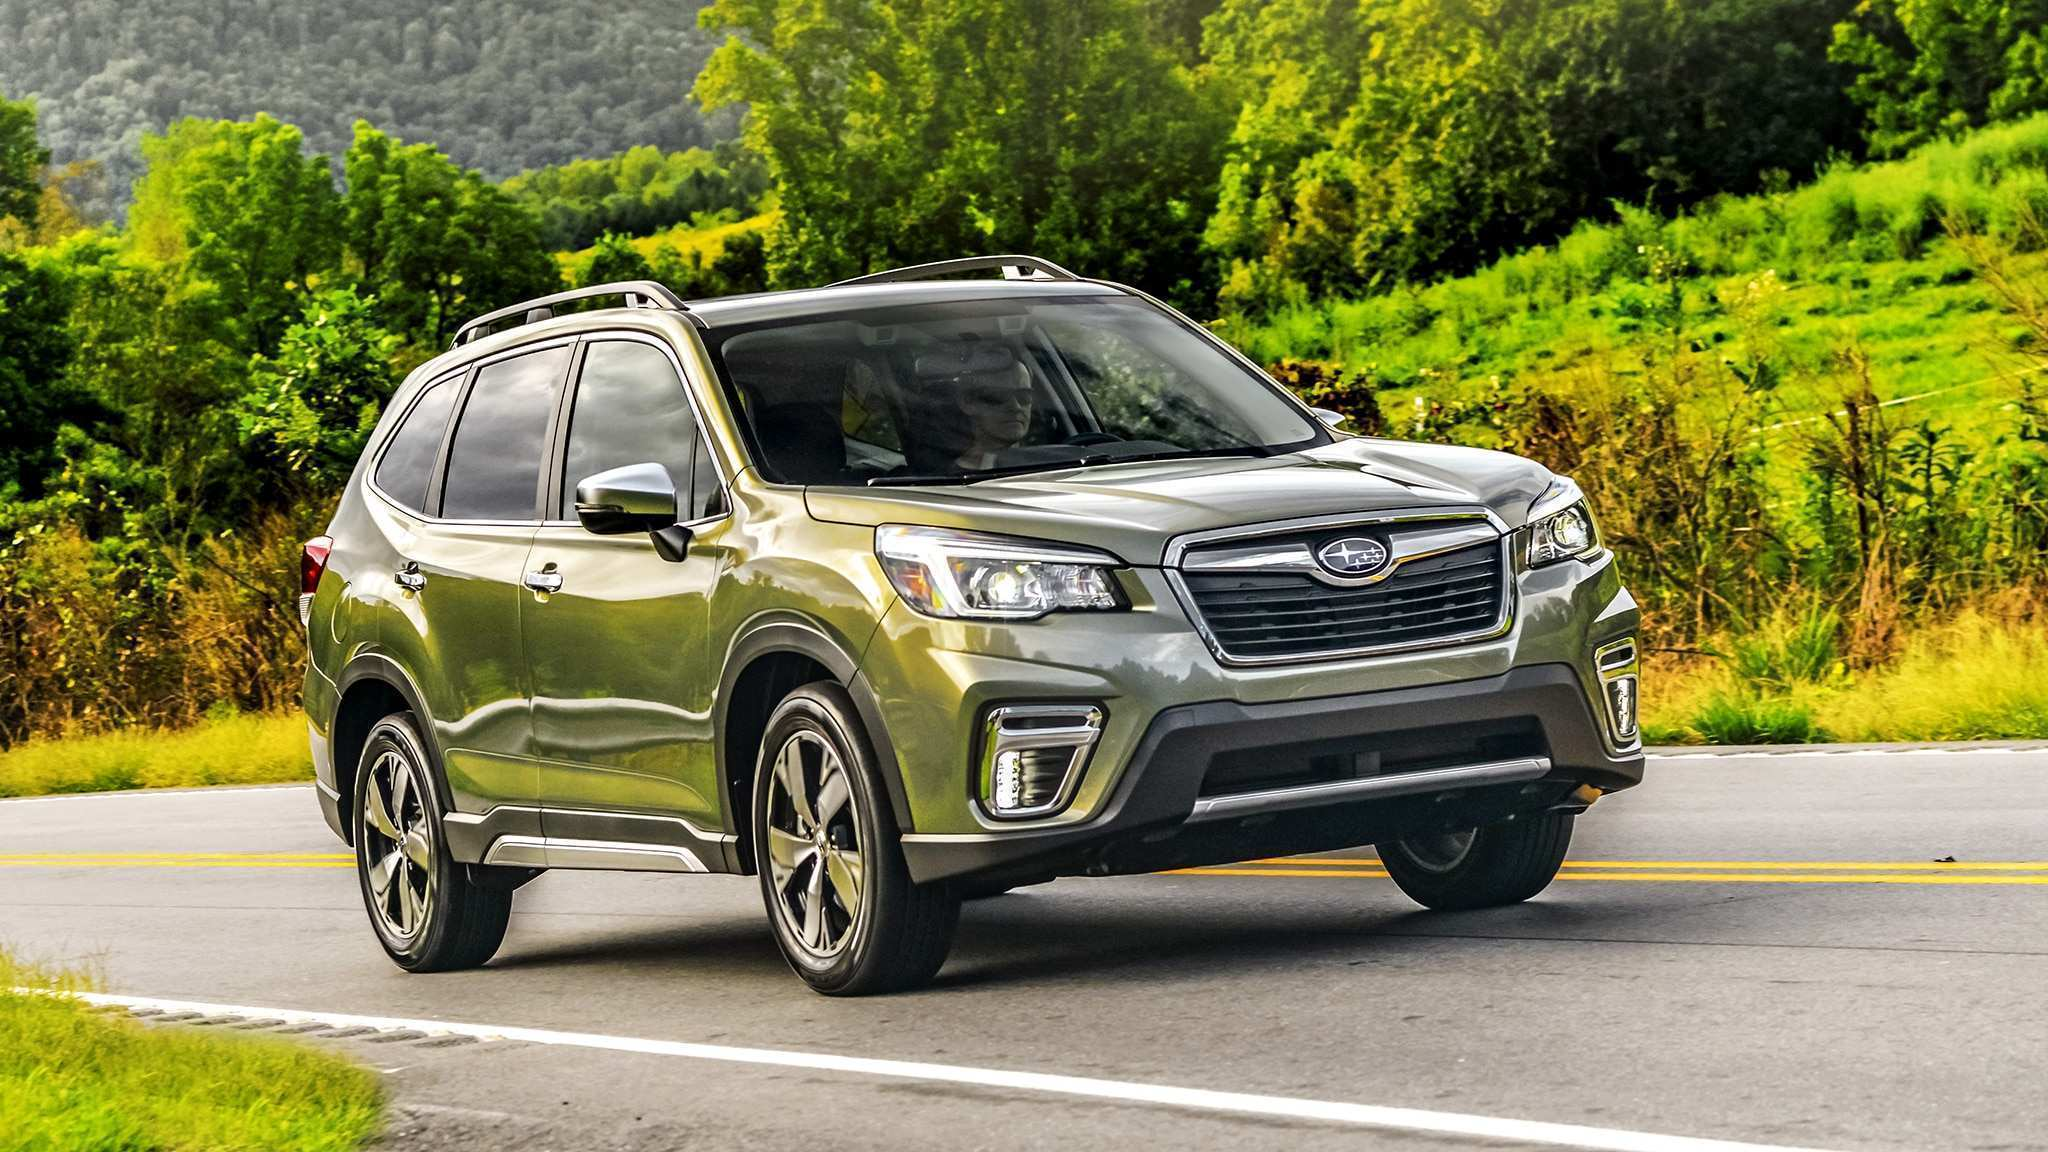 29 Gallery of 2019 Subaru Forester Manual Ratings for 2019 Subaru Forester Manual